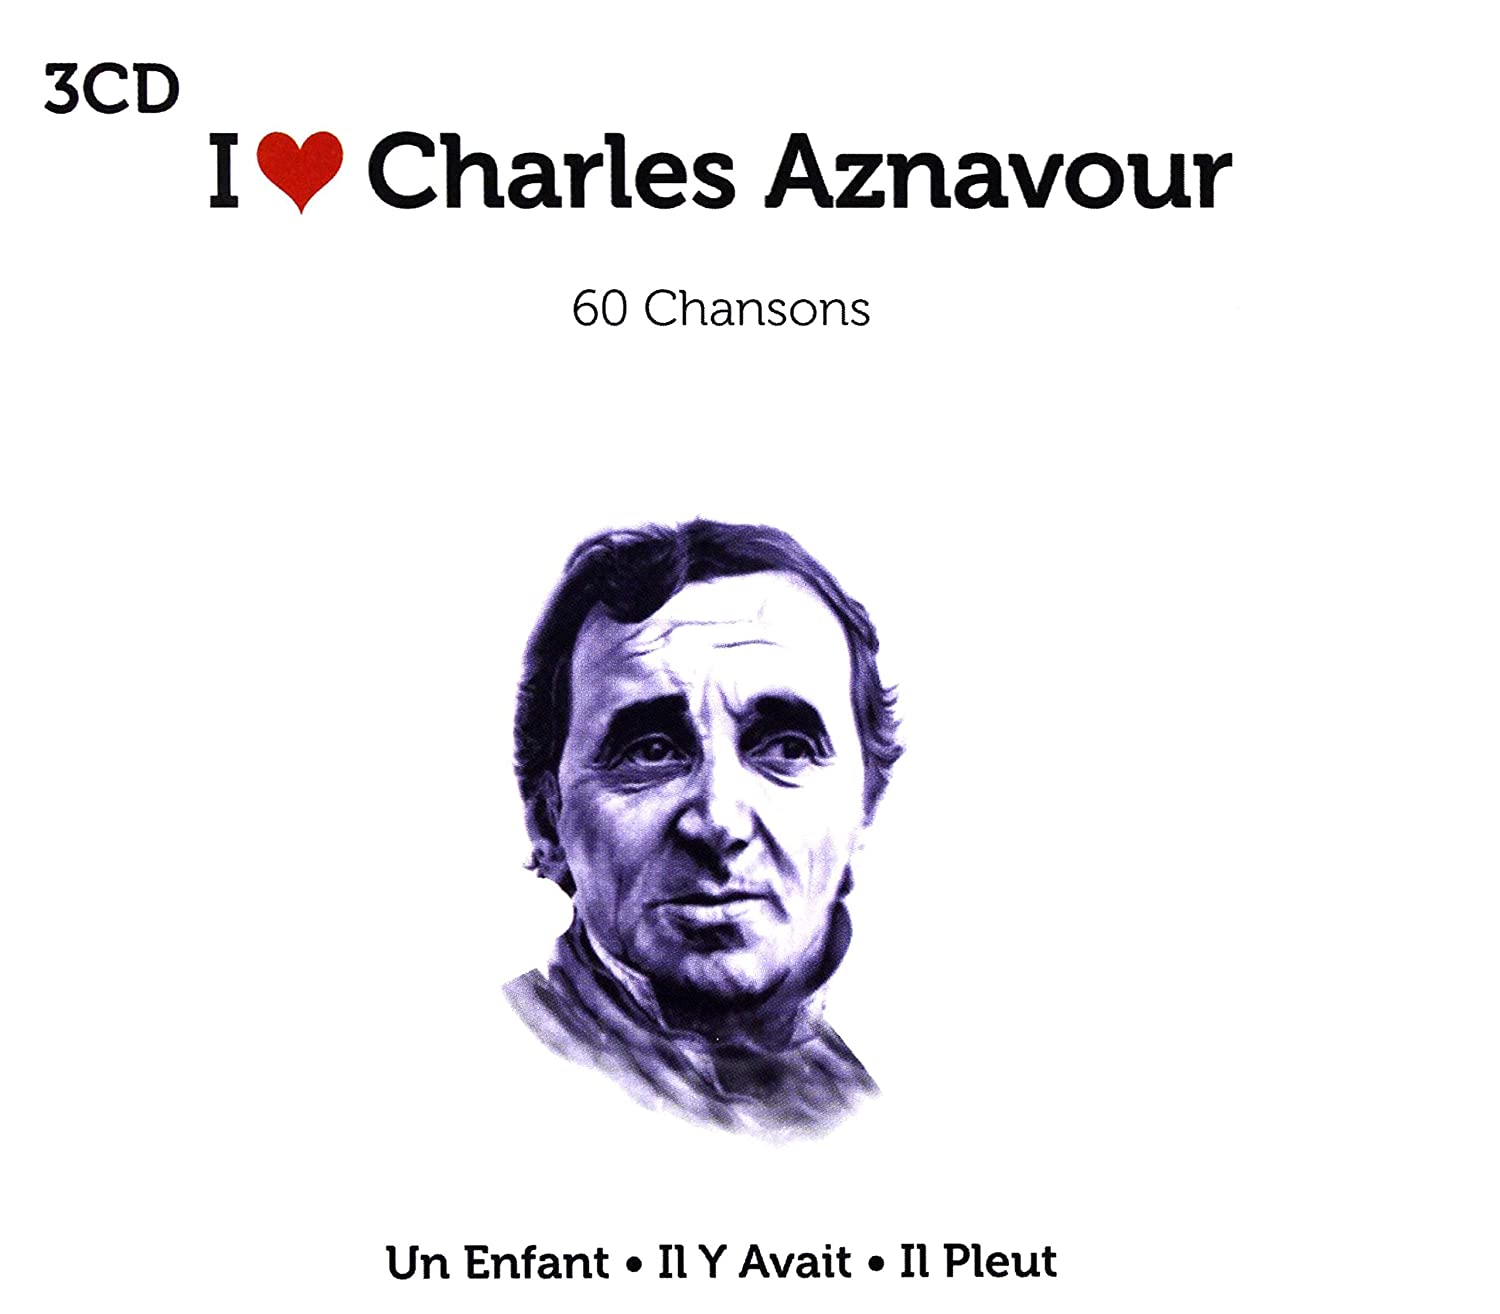 I Love Charles Aznavour..                                                                                                                                                                                                                                                                                                                                                                                                <span class=